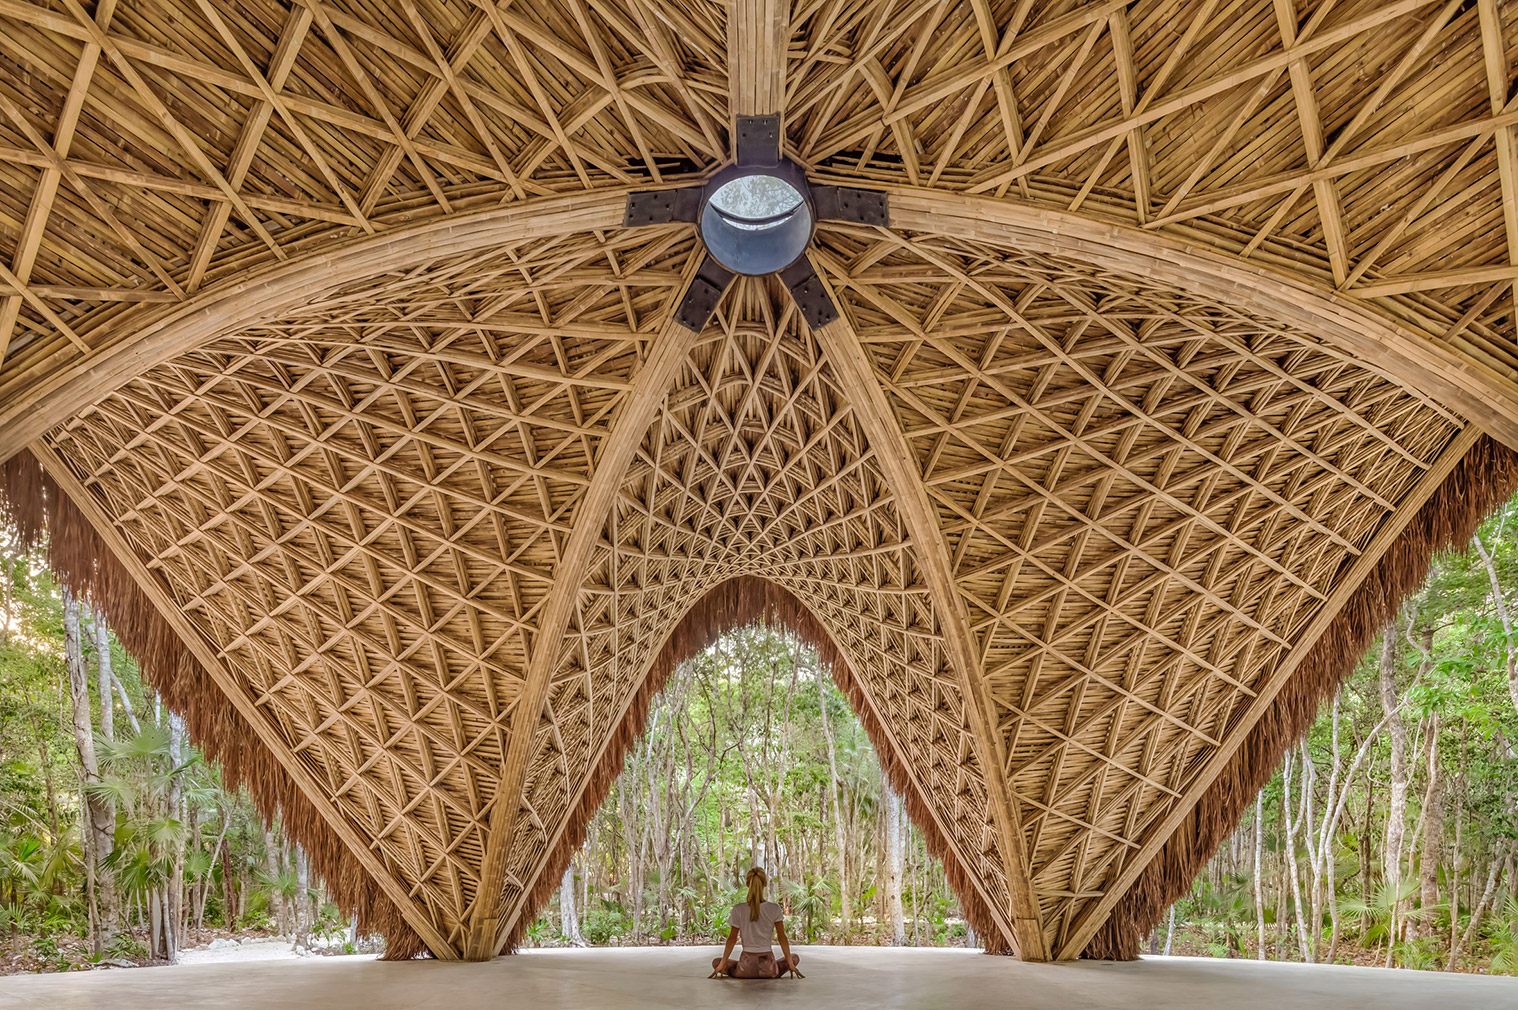 These yoga studios set a new standard for calming design: Luum Temple in Tulum, Mexico